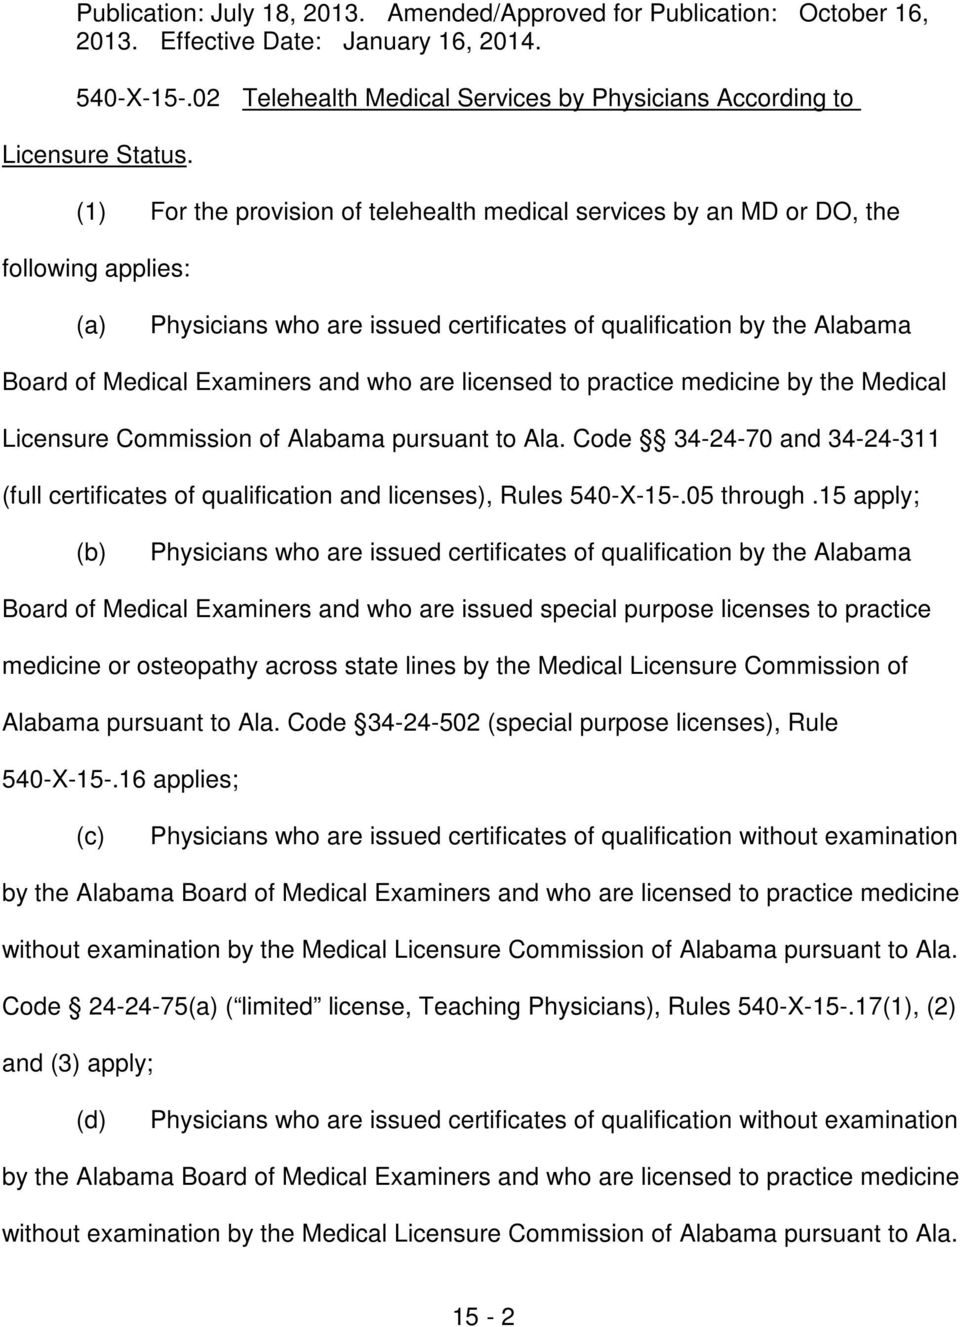 are licensed to practice medicine by the Medical Licensure Commission of Alabama pursuant to Ala. Code 34-24-70 and 34-24-311 (full certificates of qualification and licenses), Rules 540-X-15-.